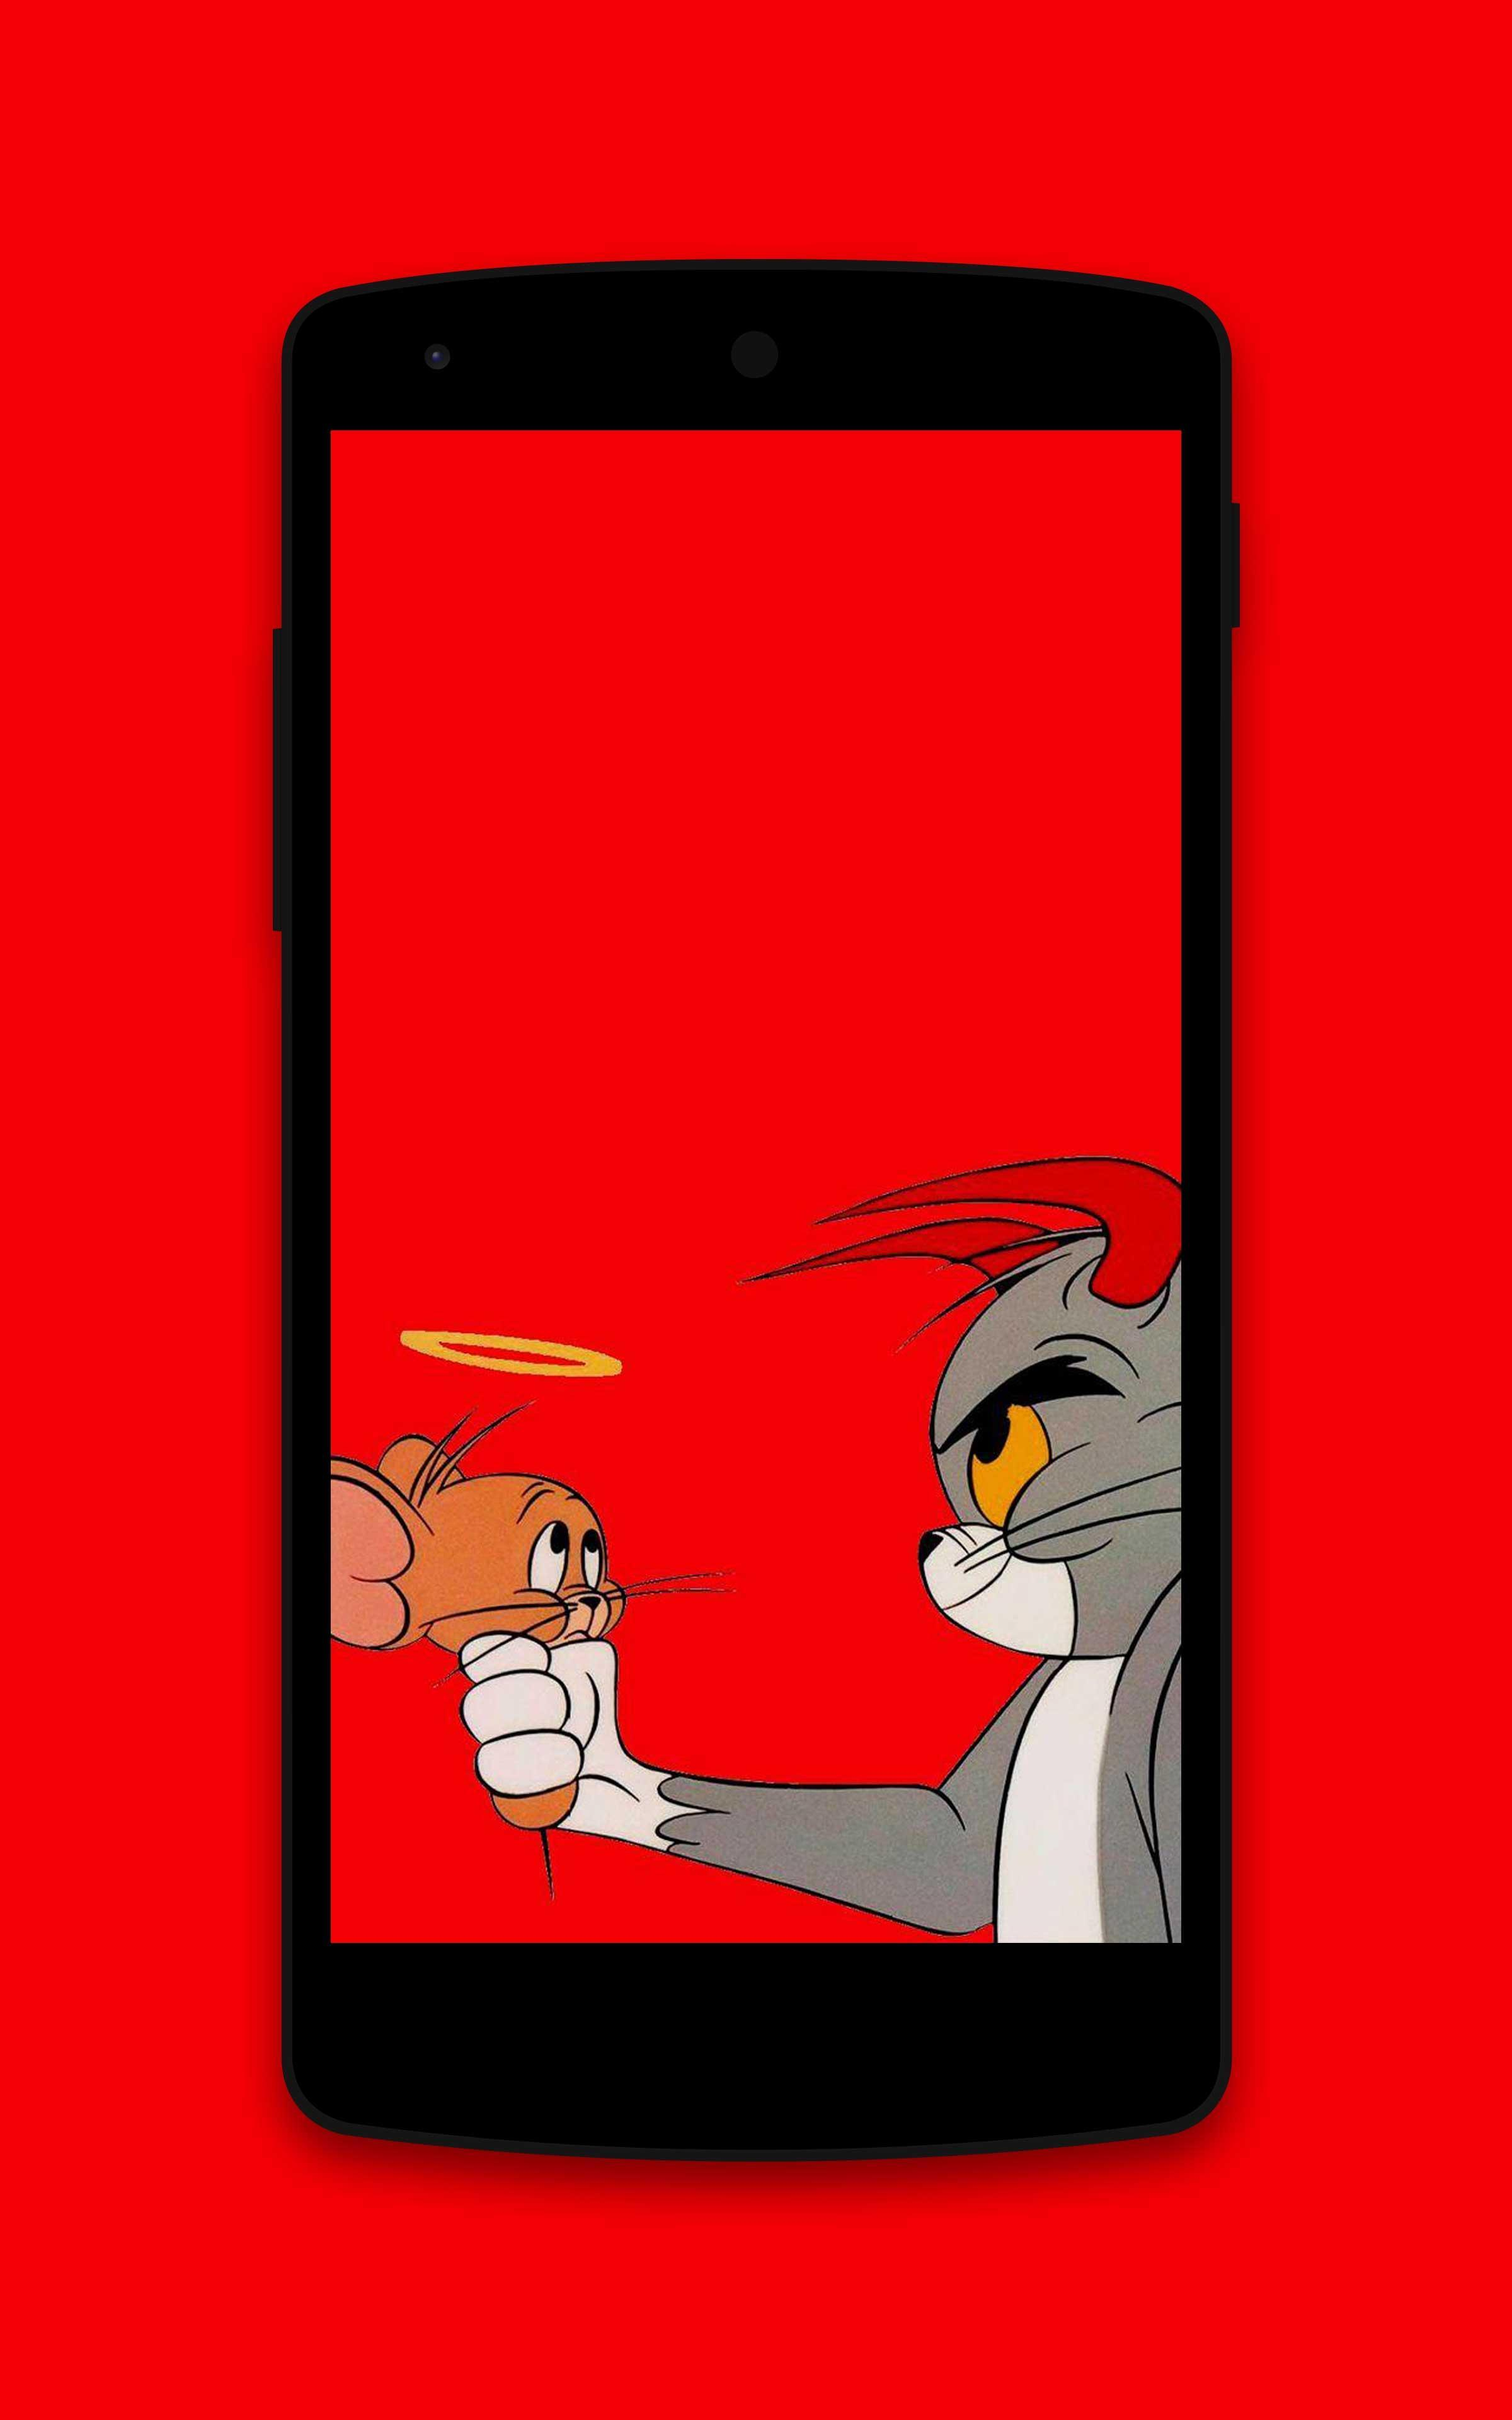 New Tom Jerry Wallpapers Hd For Android Apk Download